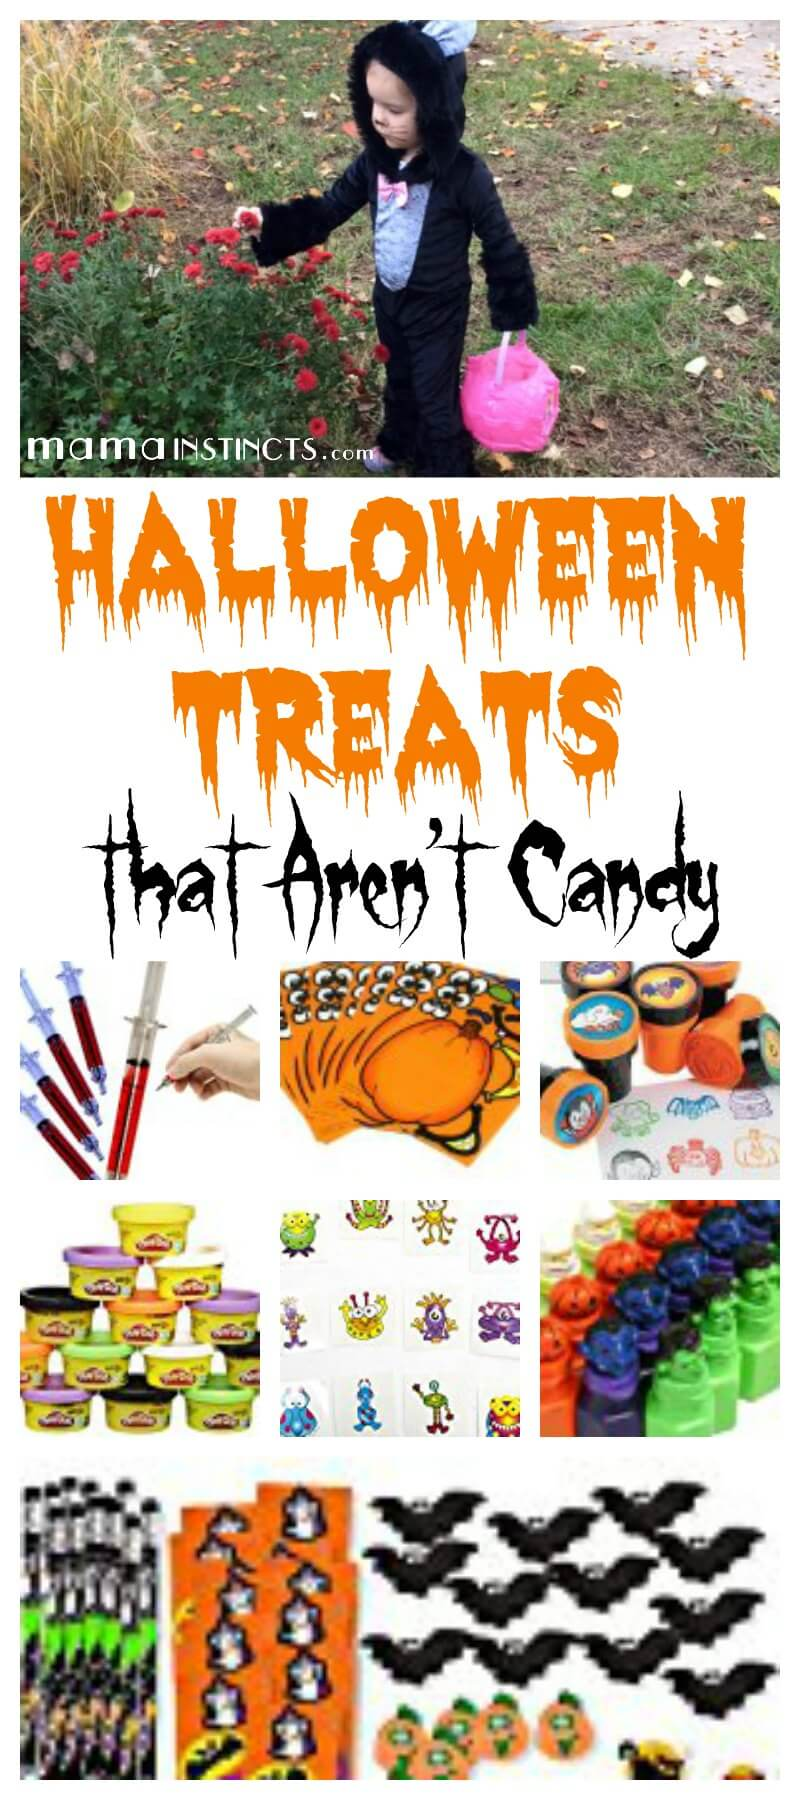 Make this Halloween a fun one but without all the unnecessary sugar. Get these fun and creepy candy alternatives for your trick-or-treaters on Halloween night.